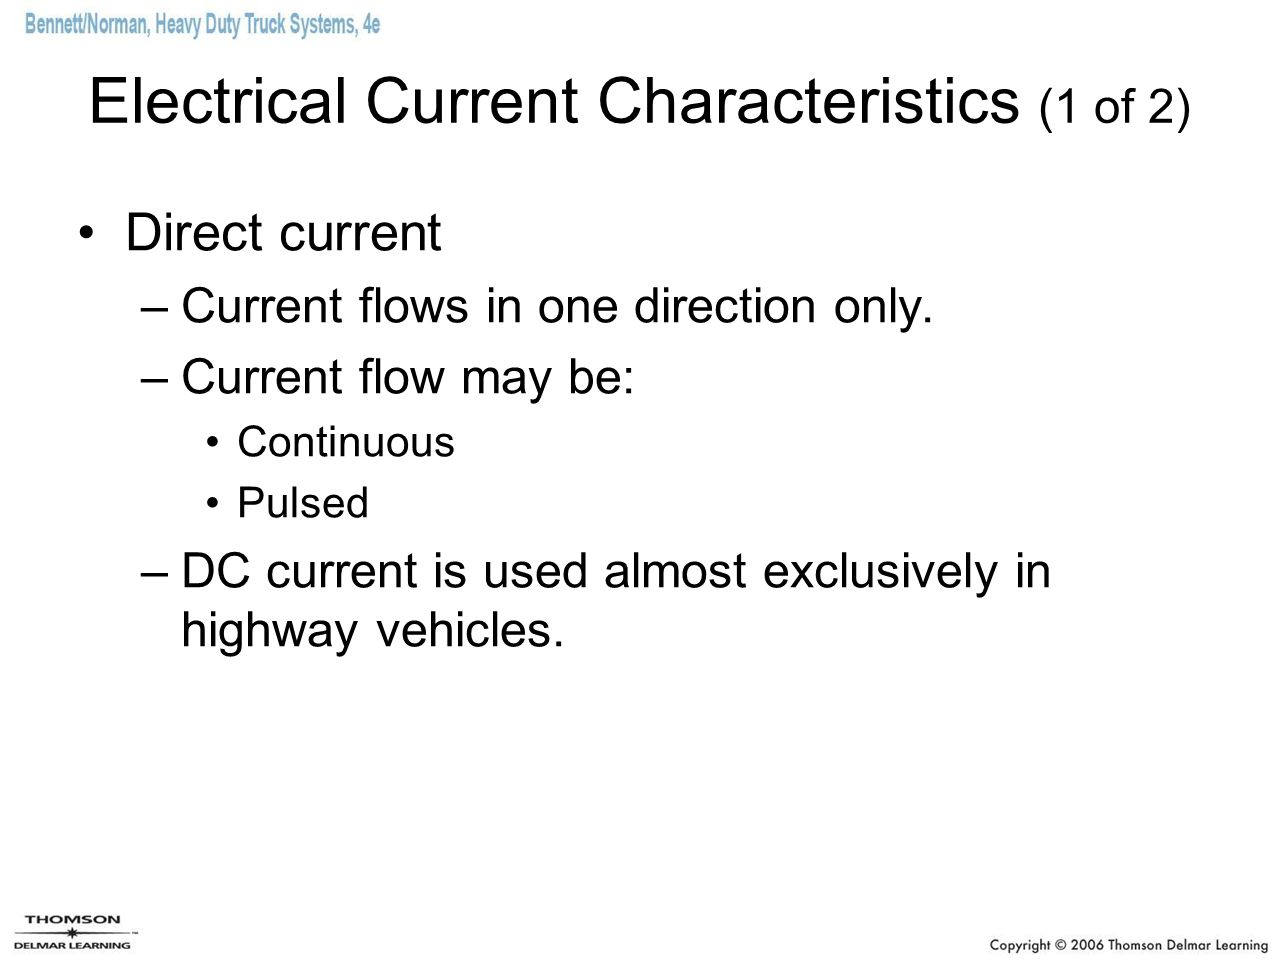 Electrical Current Characteristics (1 of 2)